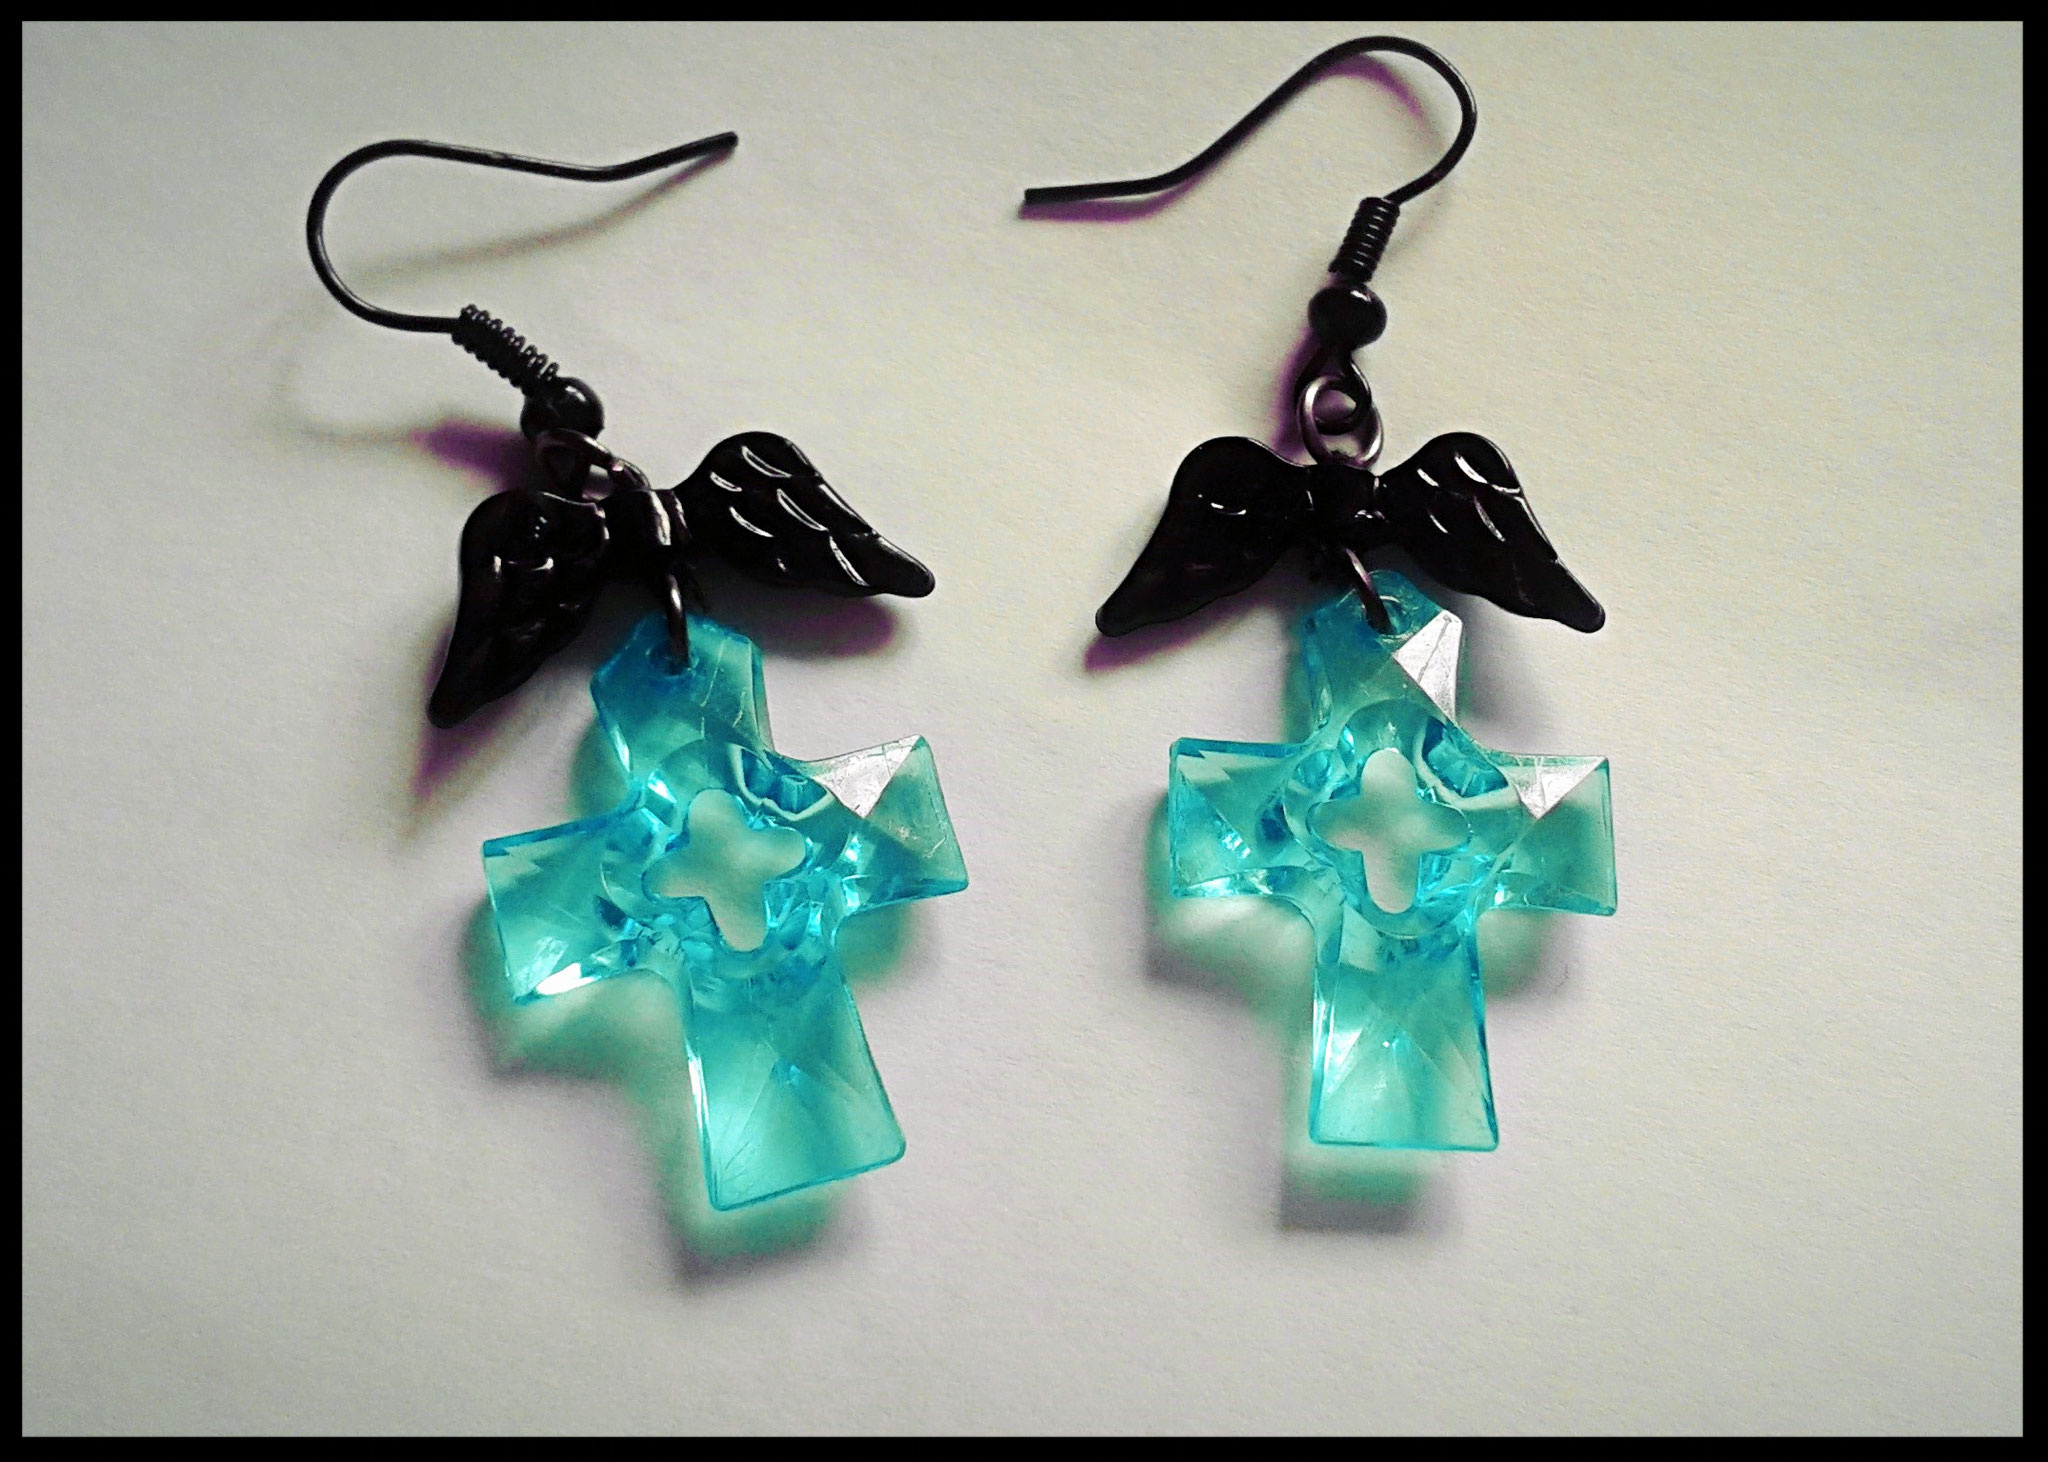 Translucent Aqua Cross Earrings with Black Wings